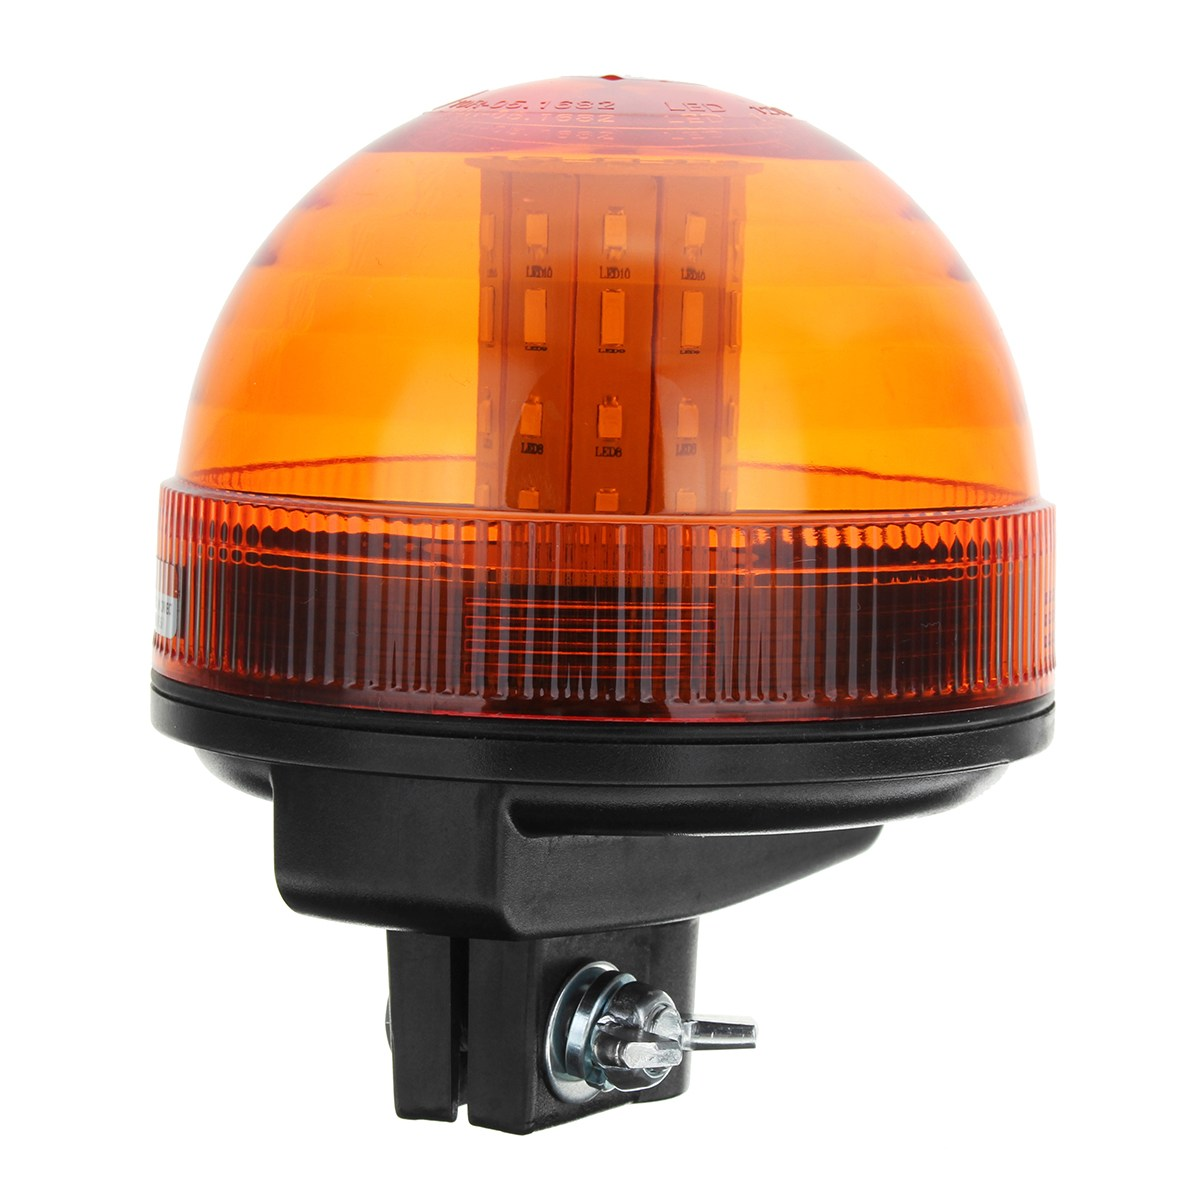 NEW 40 LED Rotating Flashing Amber Beacon Flexible Tractor Warning Light Roadway Safety new flexible